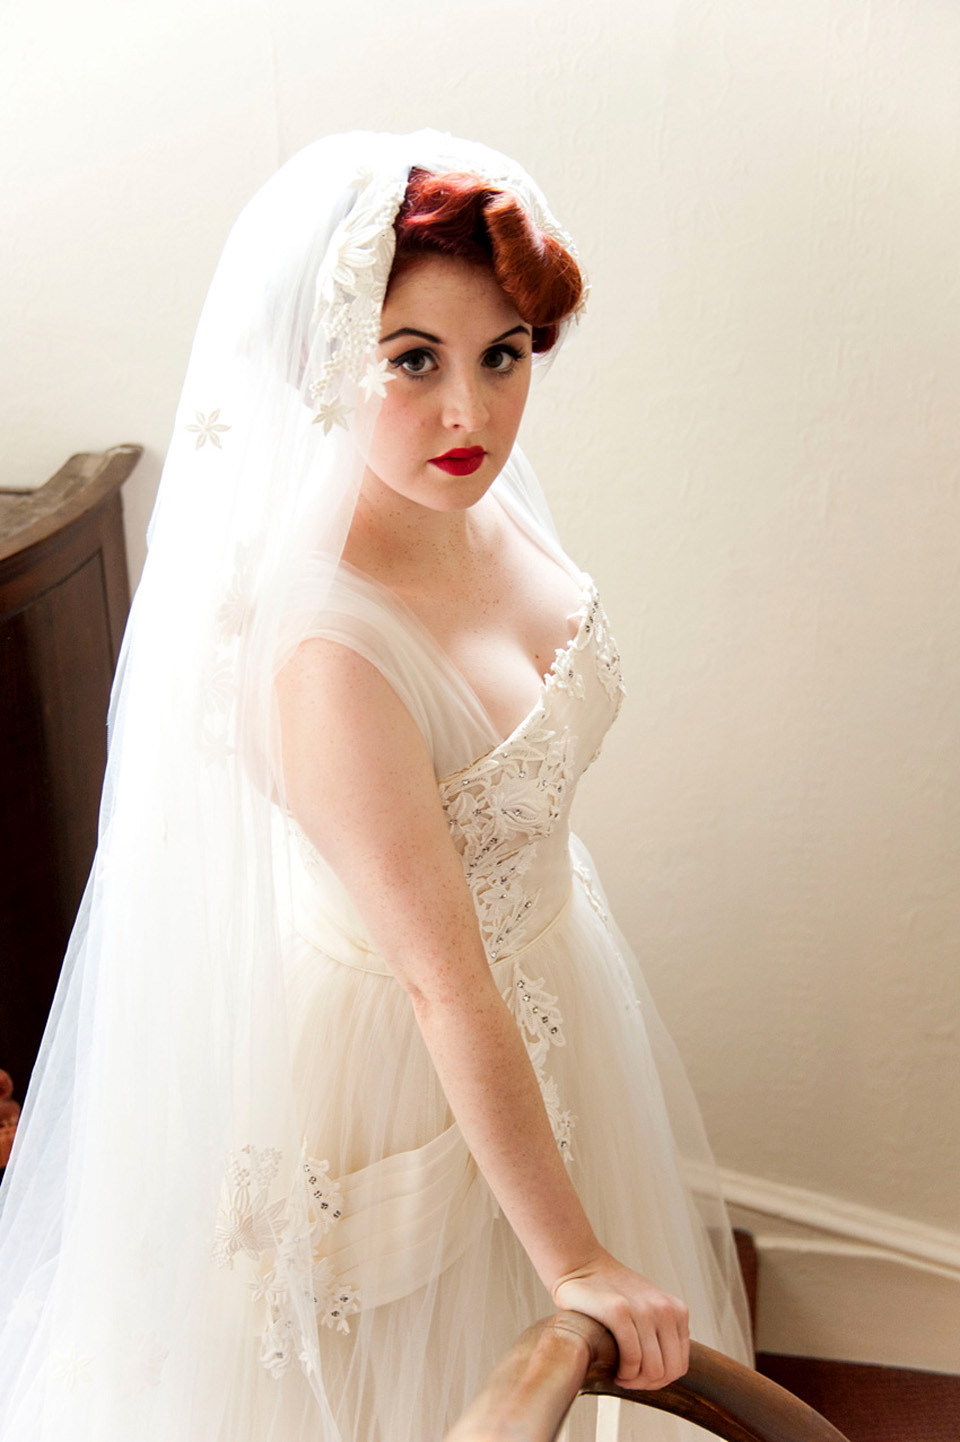 A Celebration of Vintage Bridal Fashion with Abigail's Vintage (Bridal Fashion Fashion & Beauty )